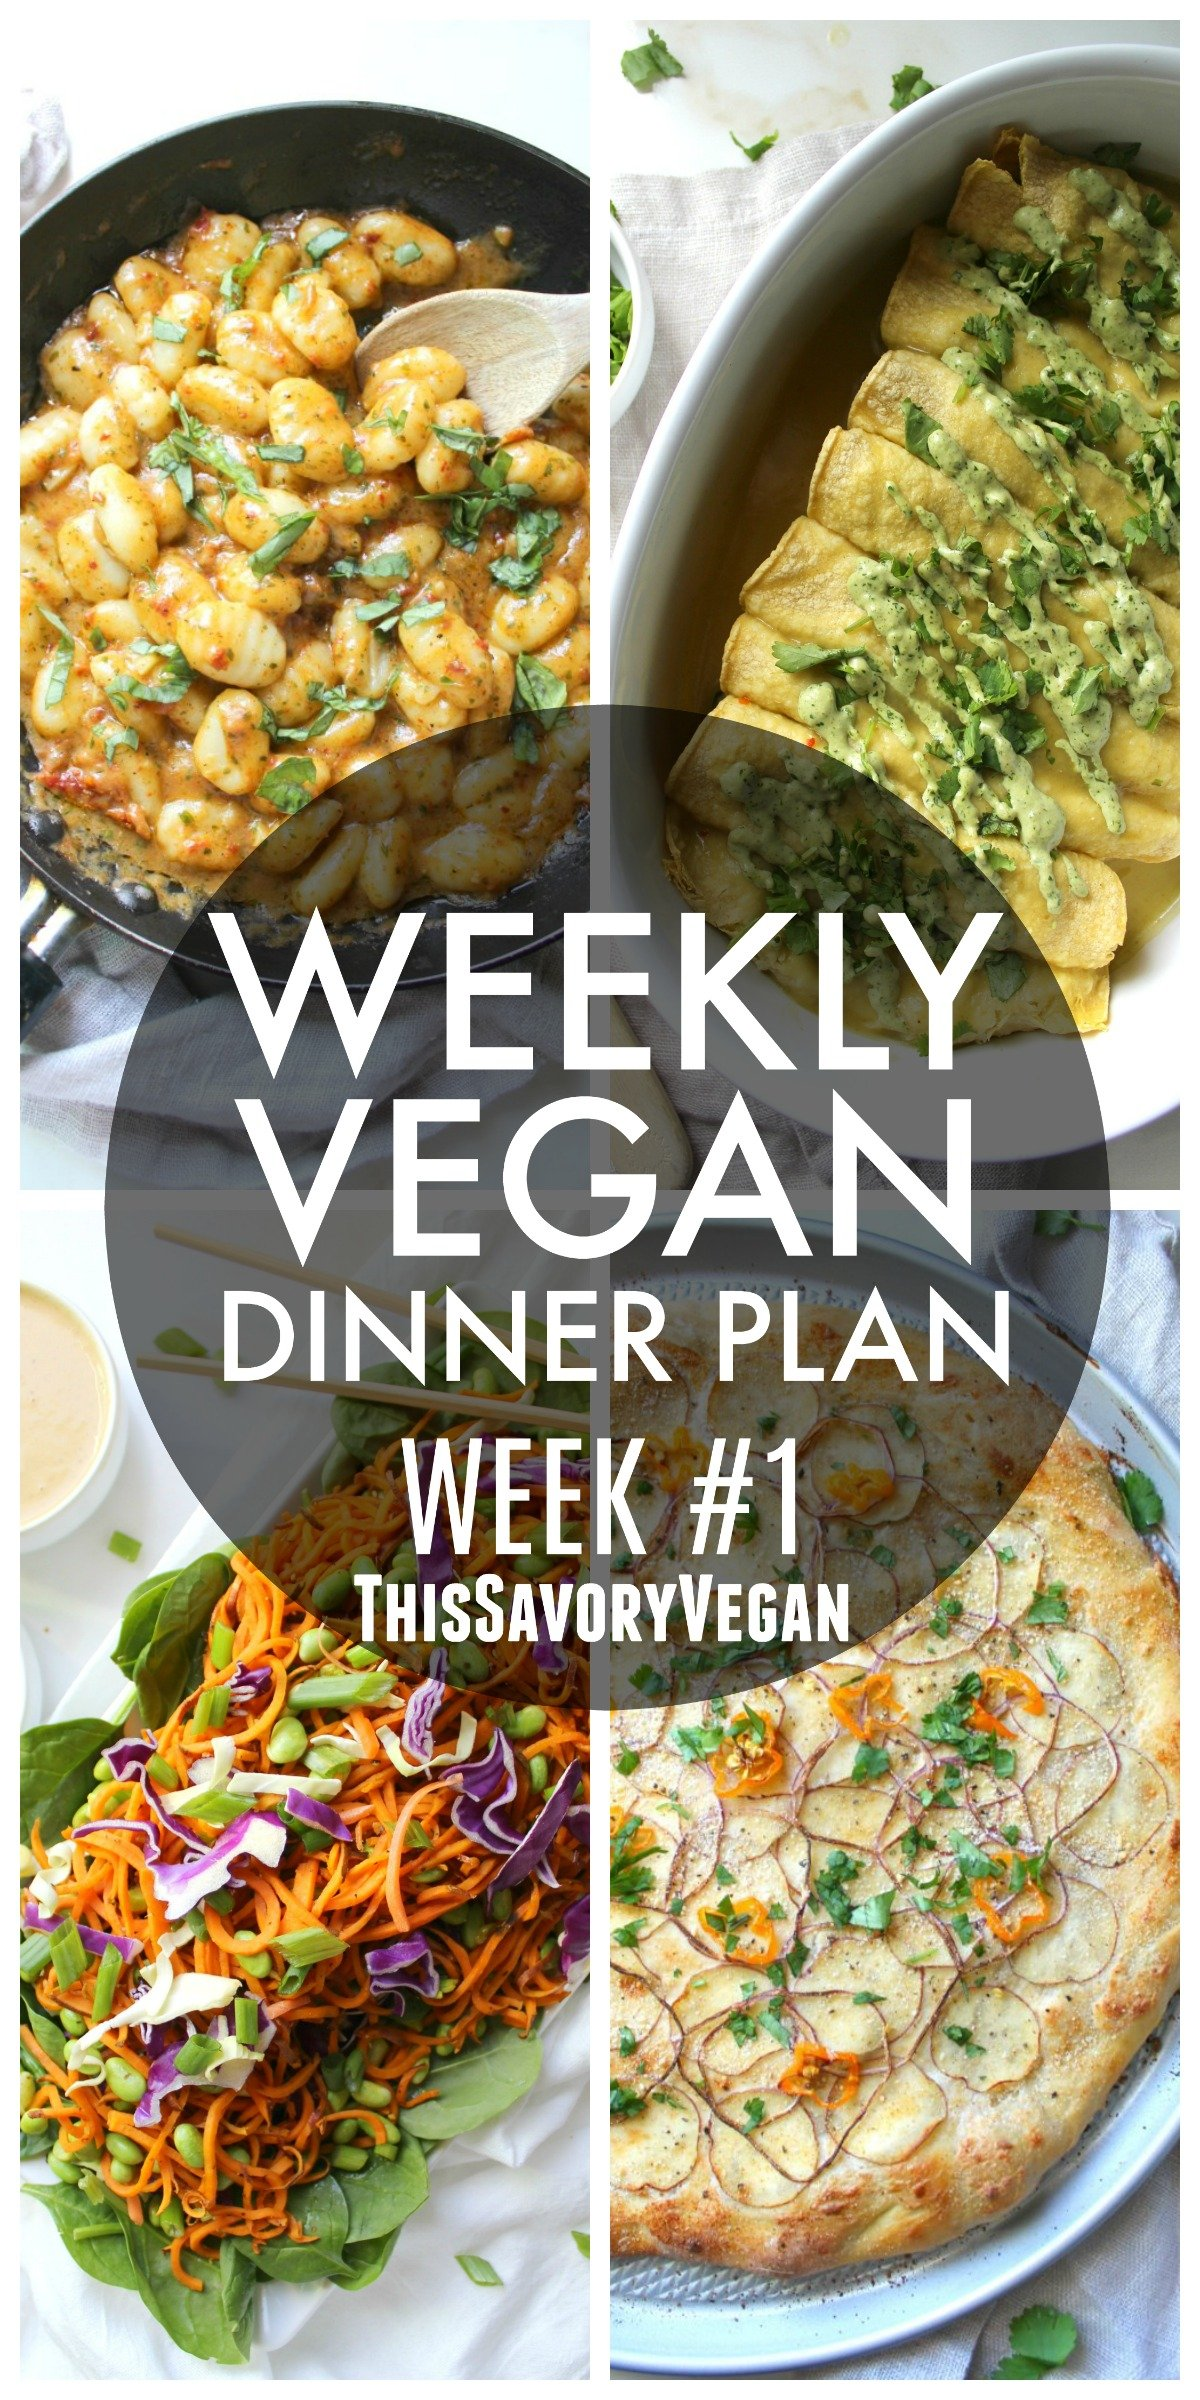 5 nights worth of vegan dinners to help inspire your menu. Choose one recipe to add to your rotation or make them all - shopping list included   ThisSavoryVegan.com #mealplan